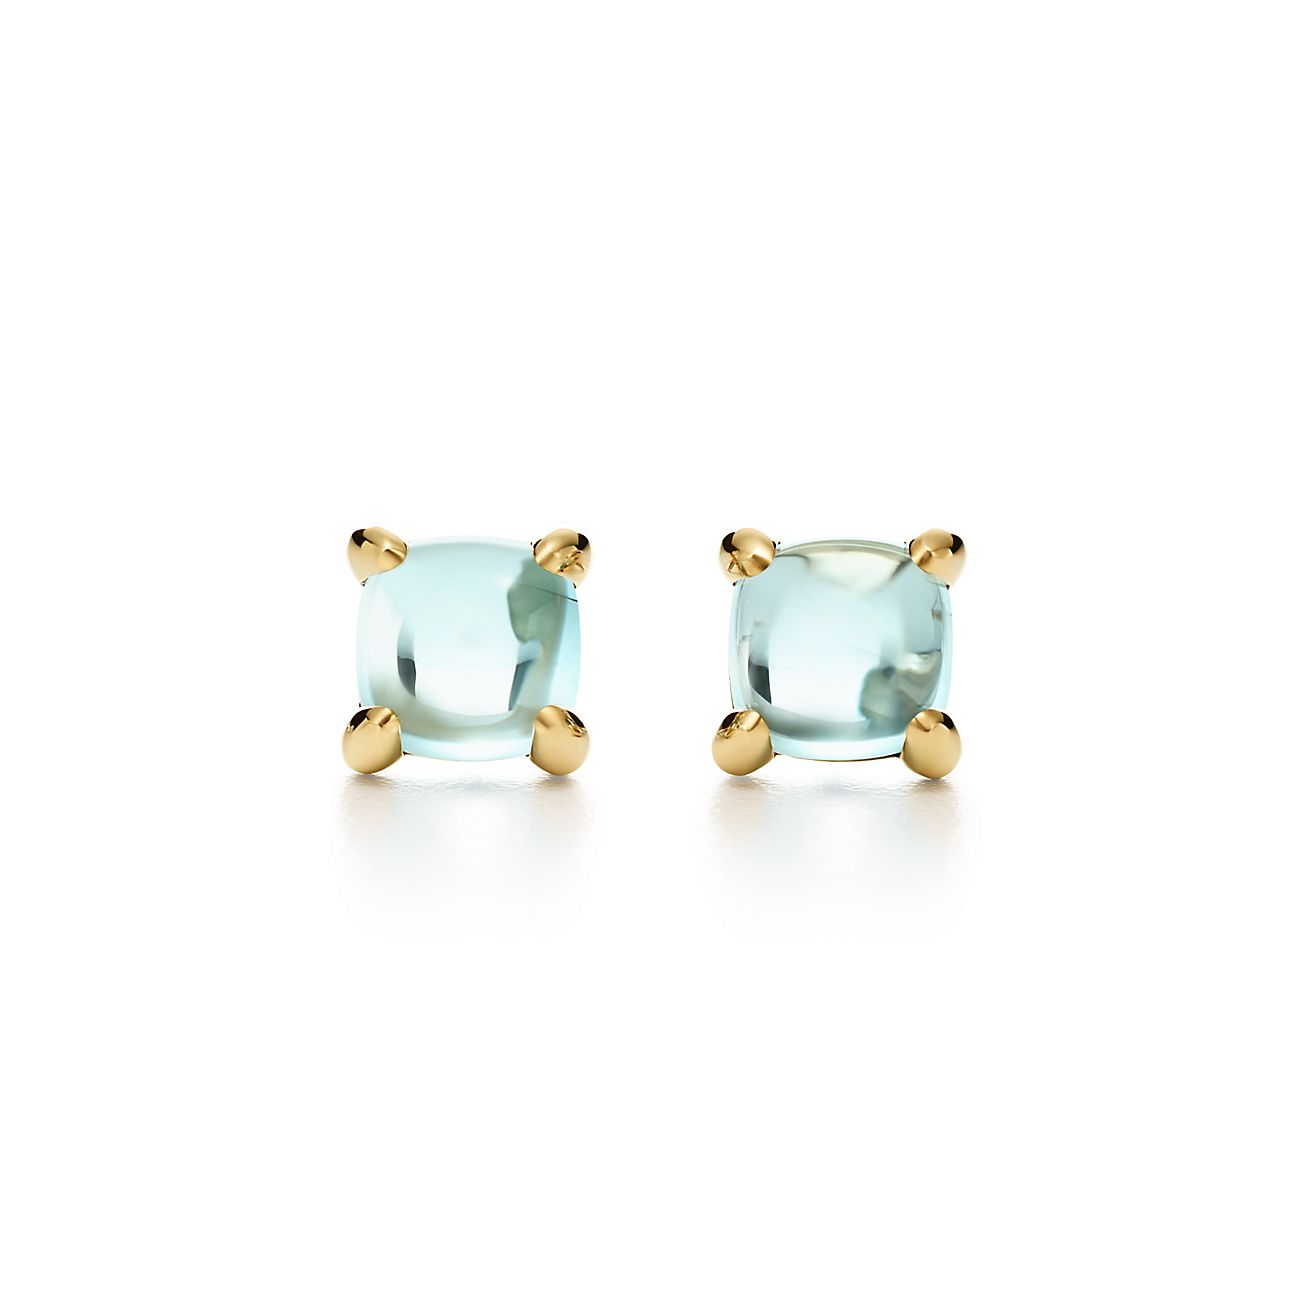 Palomas Sugar Stacks earrings in 18k gold with blue topaz Tiffany & Co.